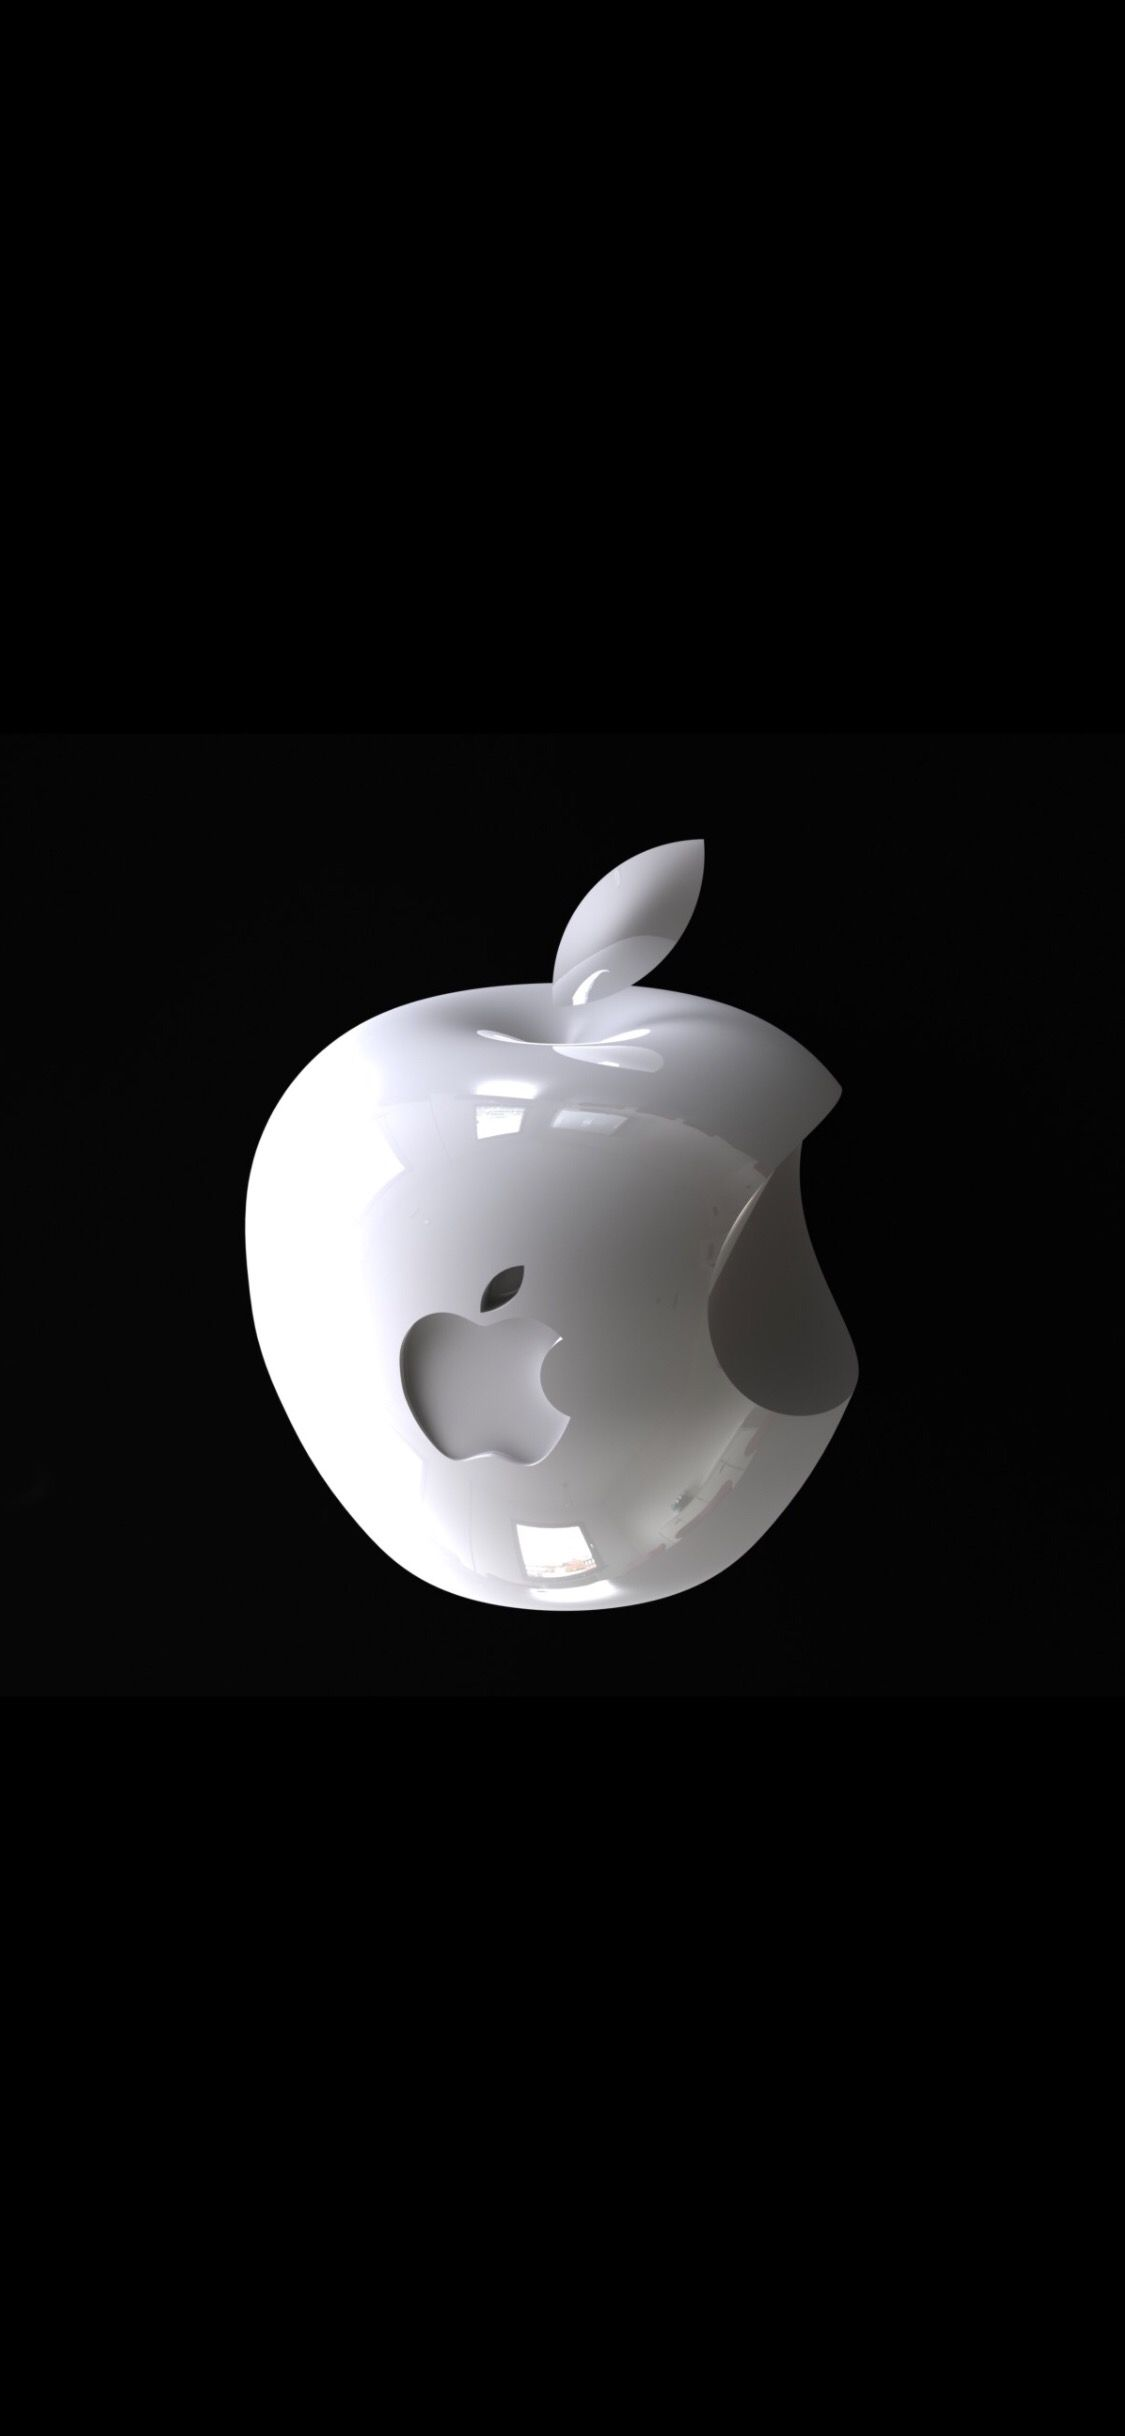 3d Apple Apple Logo Wallpaper Iphone Apple Wallpaper Apple